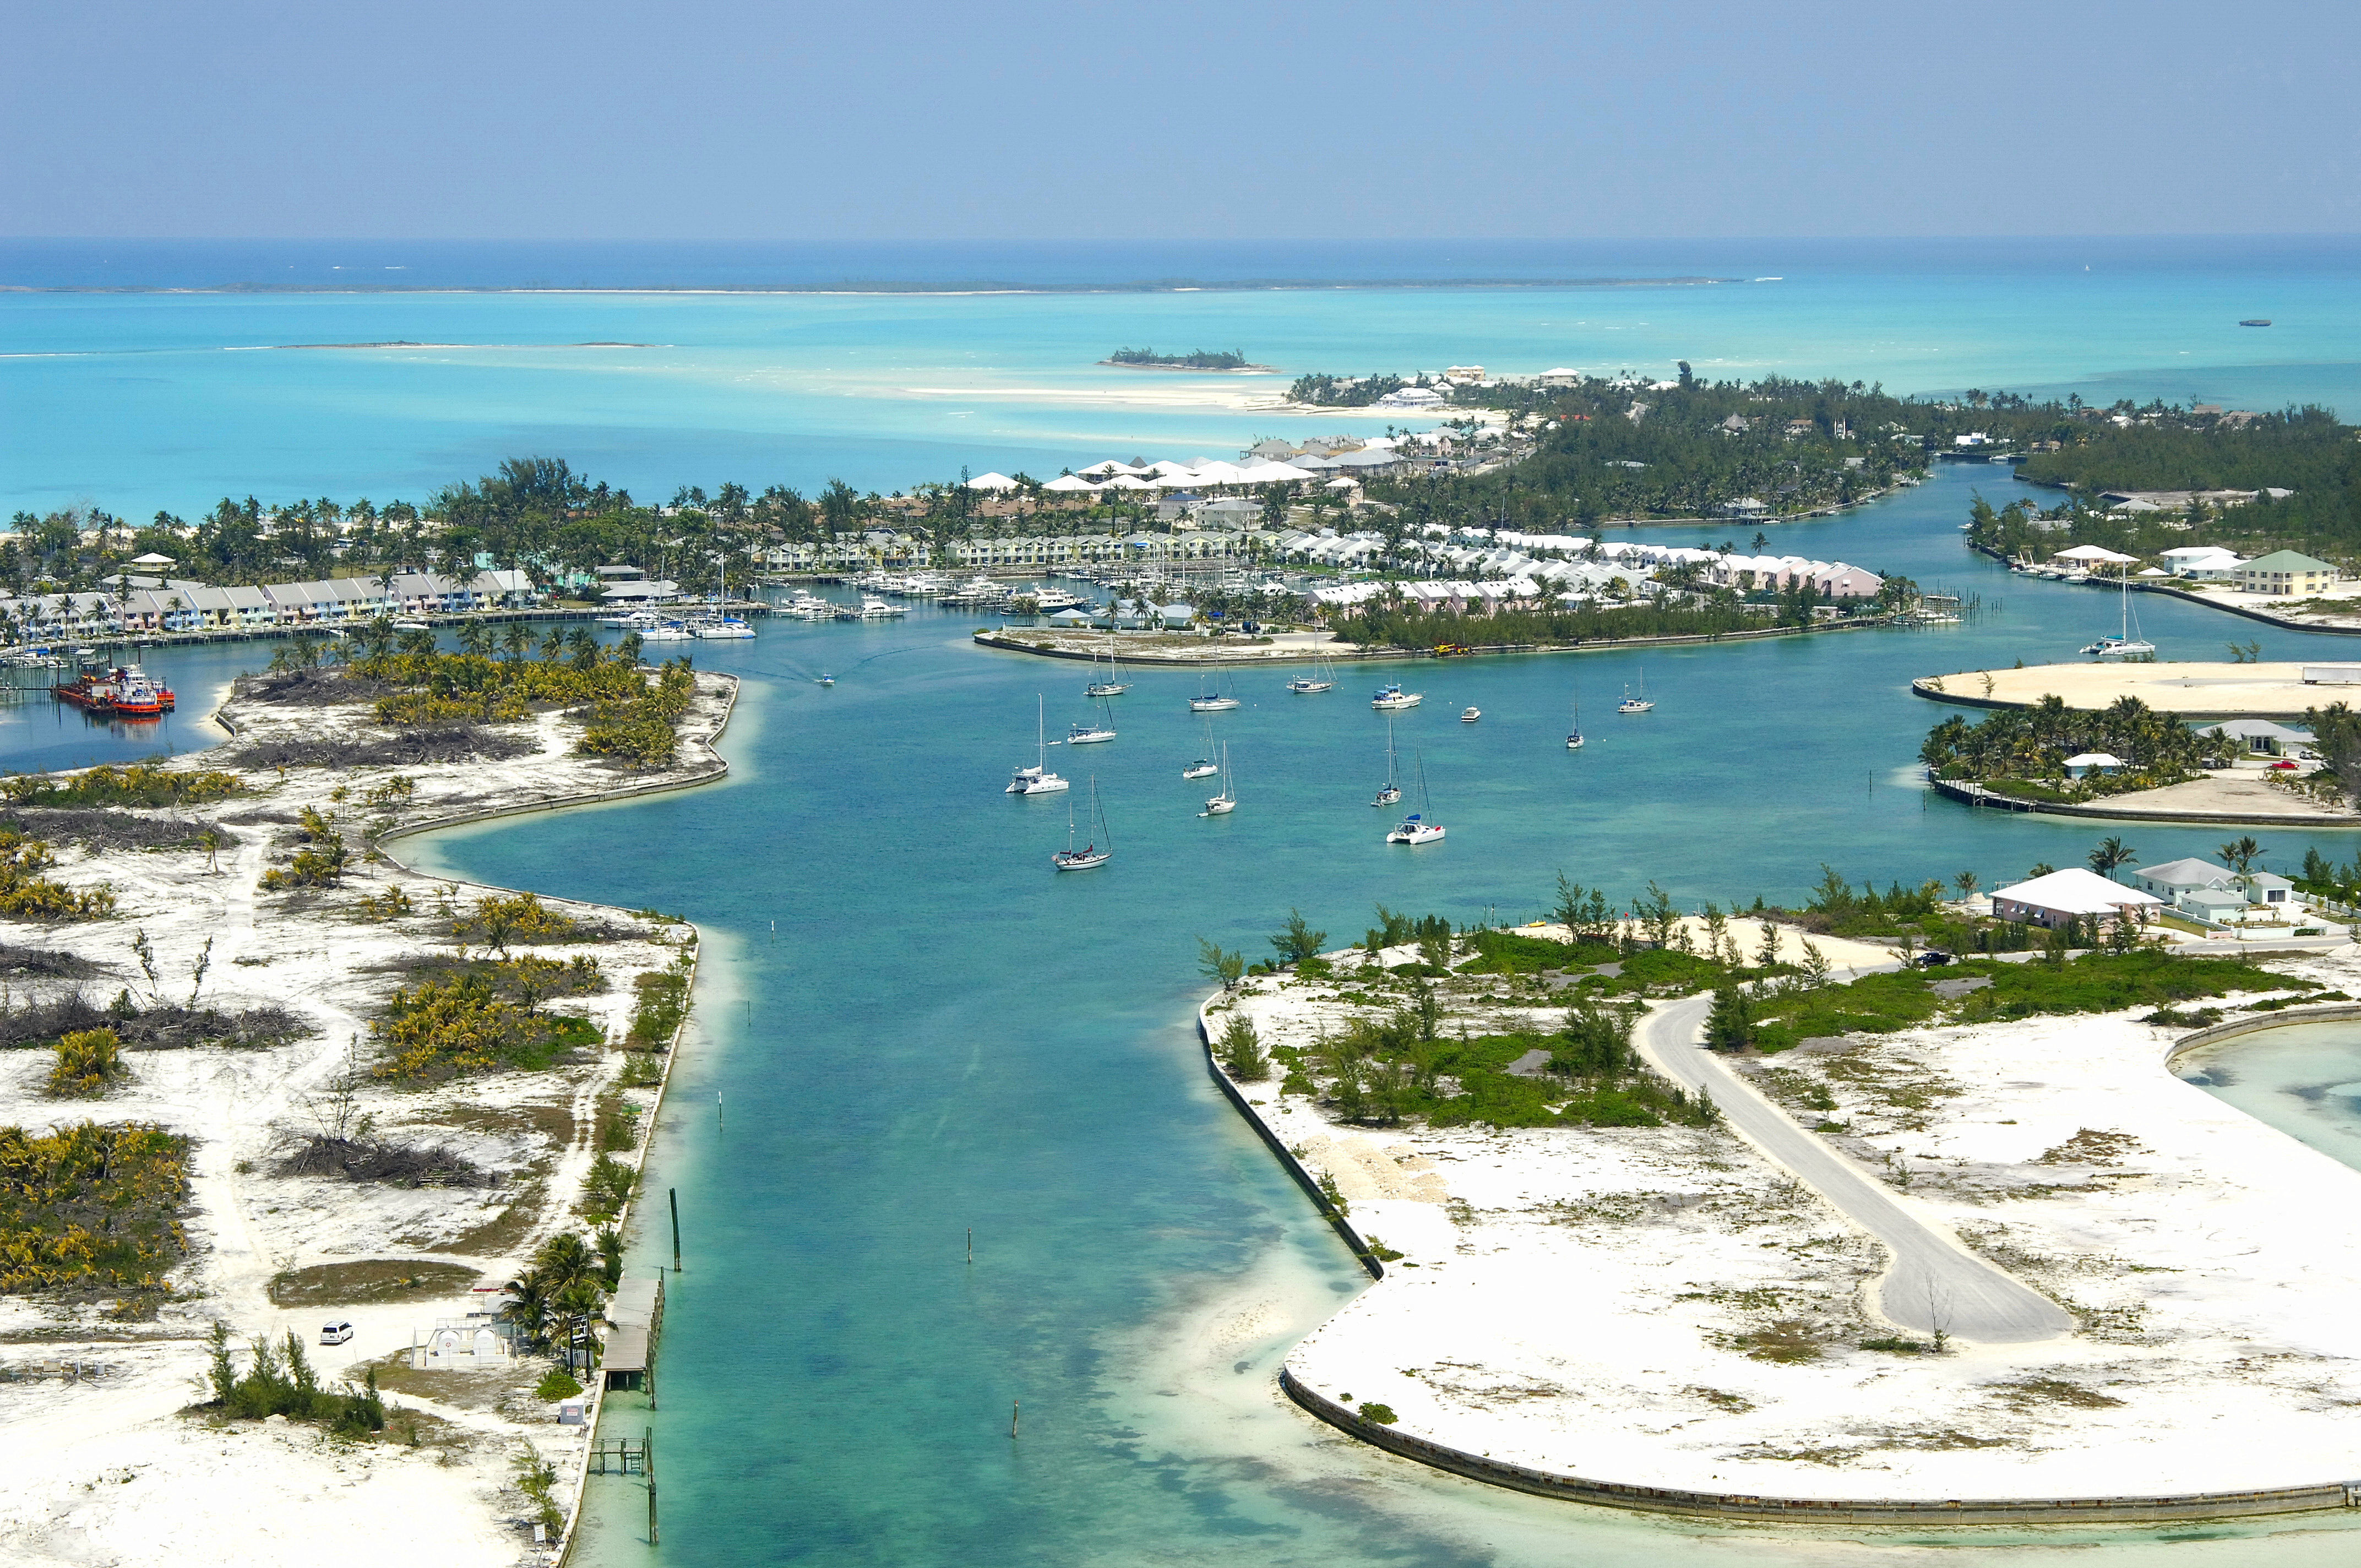 hidden treasures of the bahamas Hundreds of islands, each with tiny cays and channels, were perfect hiding  places for blackbeard and other pirates who plundered ships all along the  bahamas.